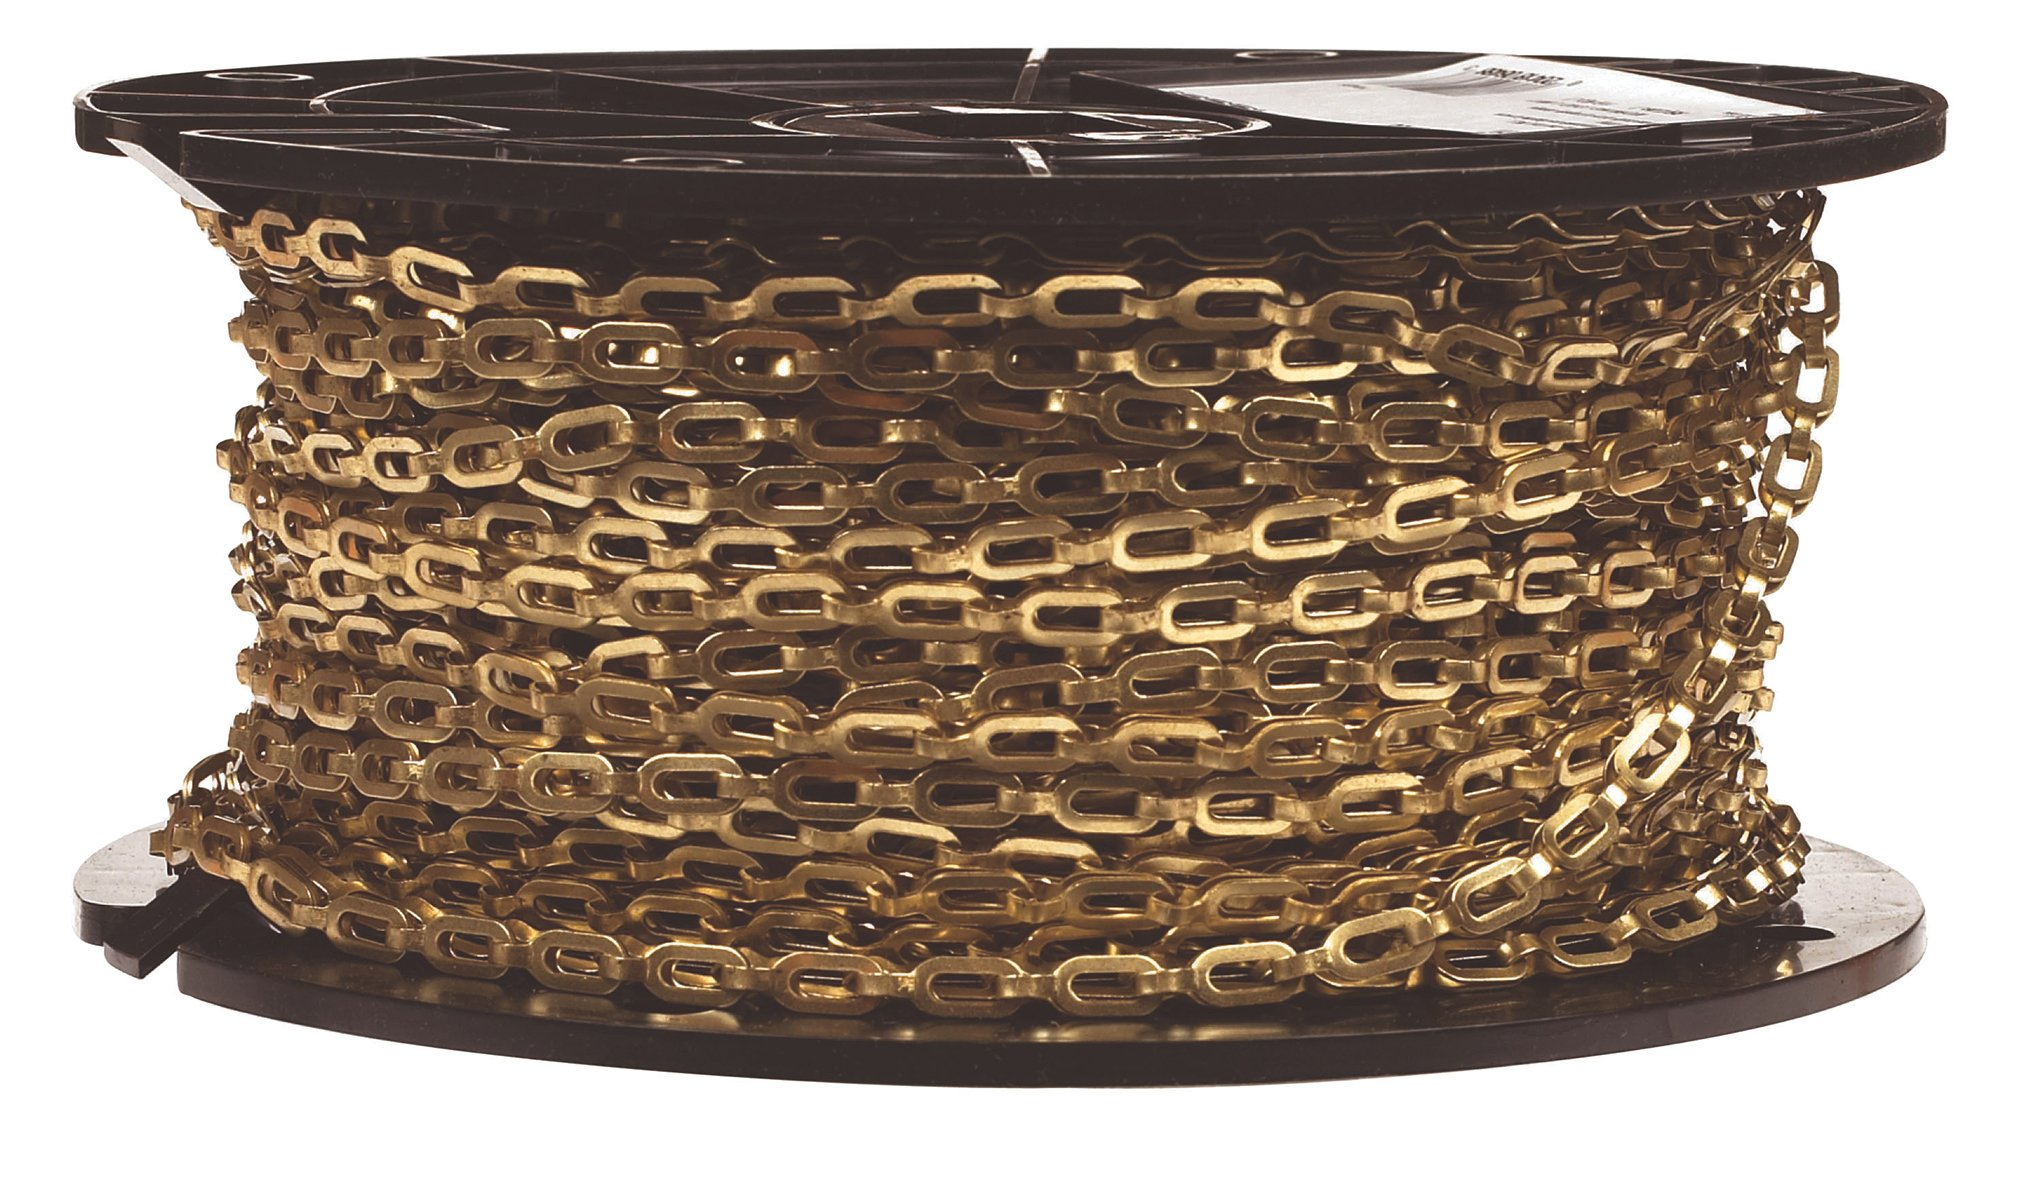 Campbell 0723817 Brass Plumbers Chain on Reel, Bright, 1/0 Trade, 0.02'' Diameter, 200' Length, 35 lbs Load Capacity